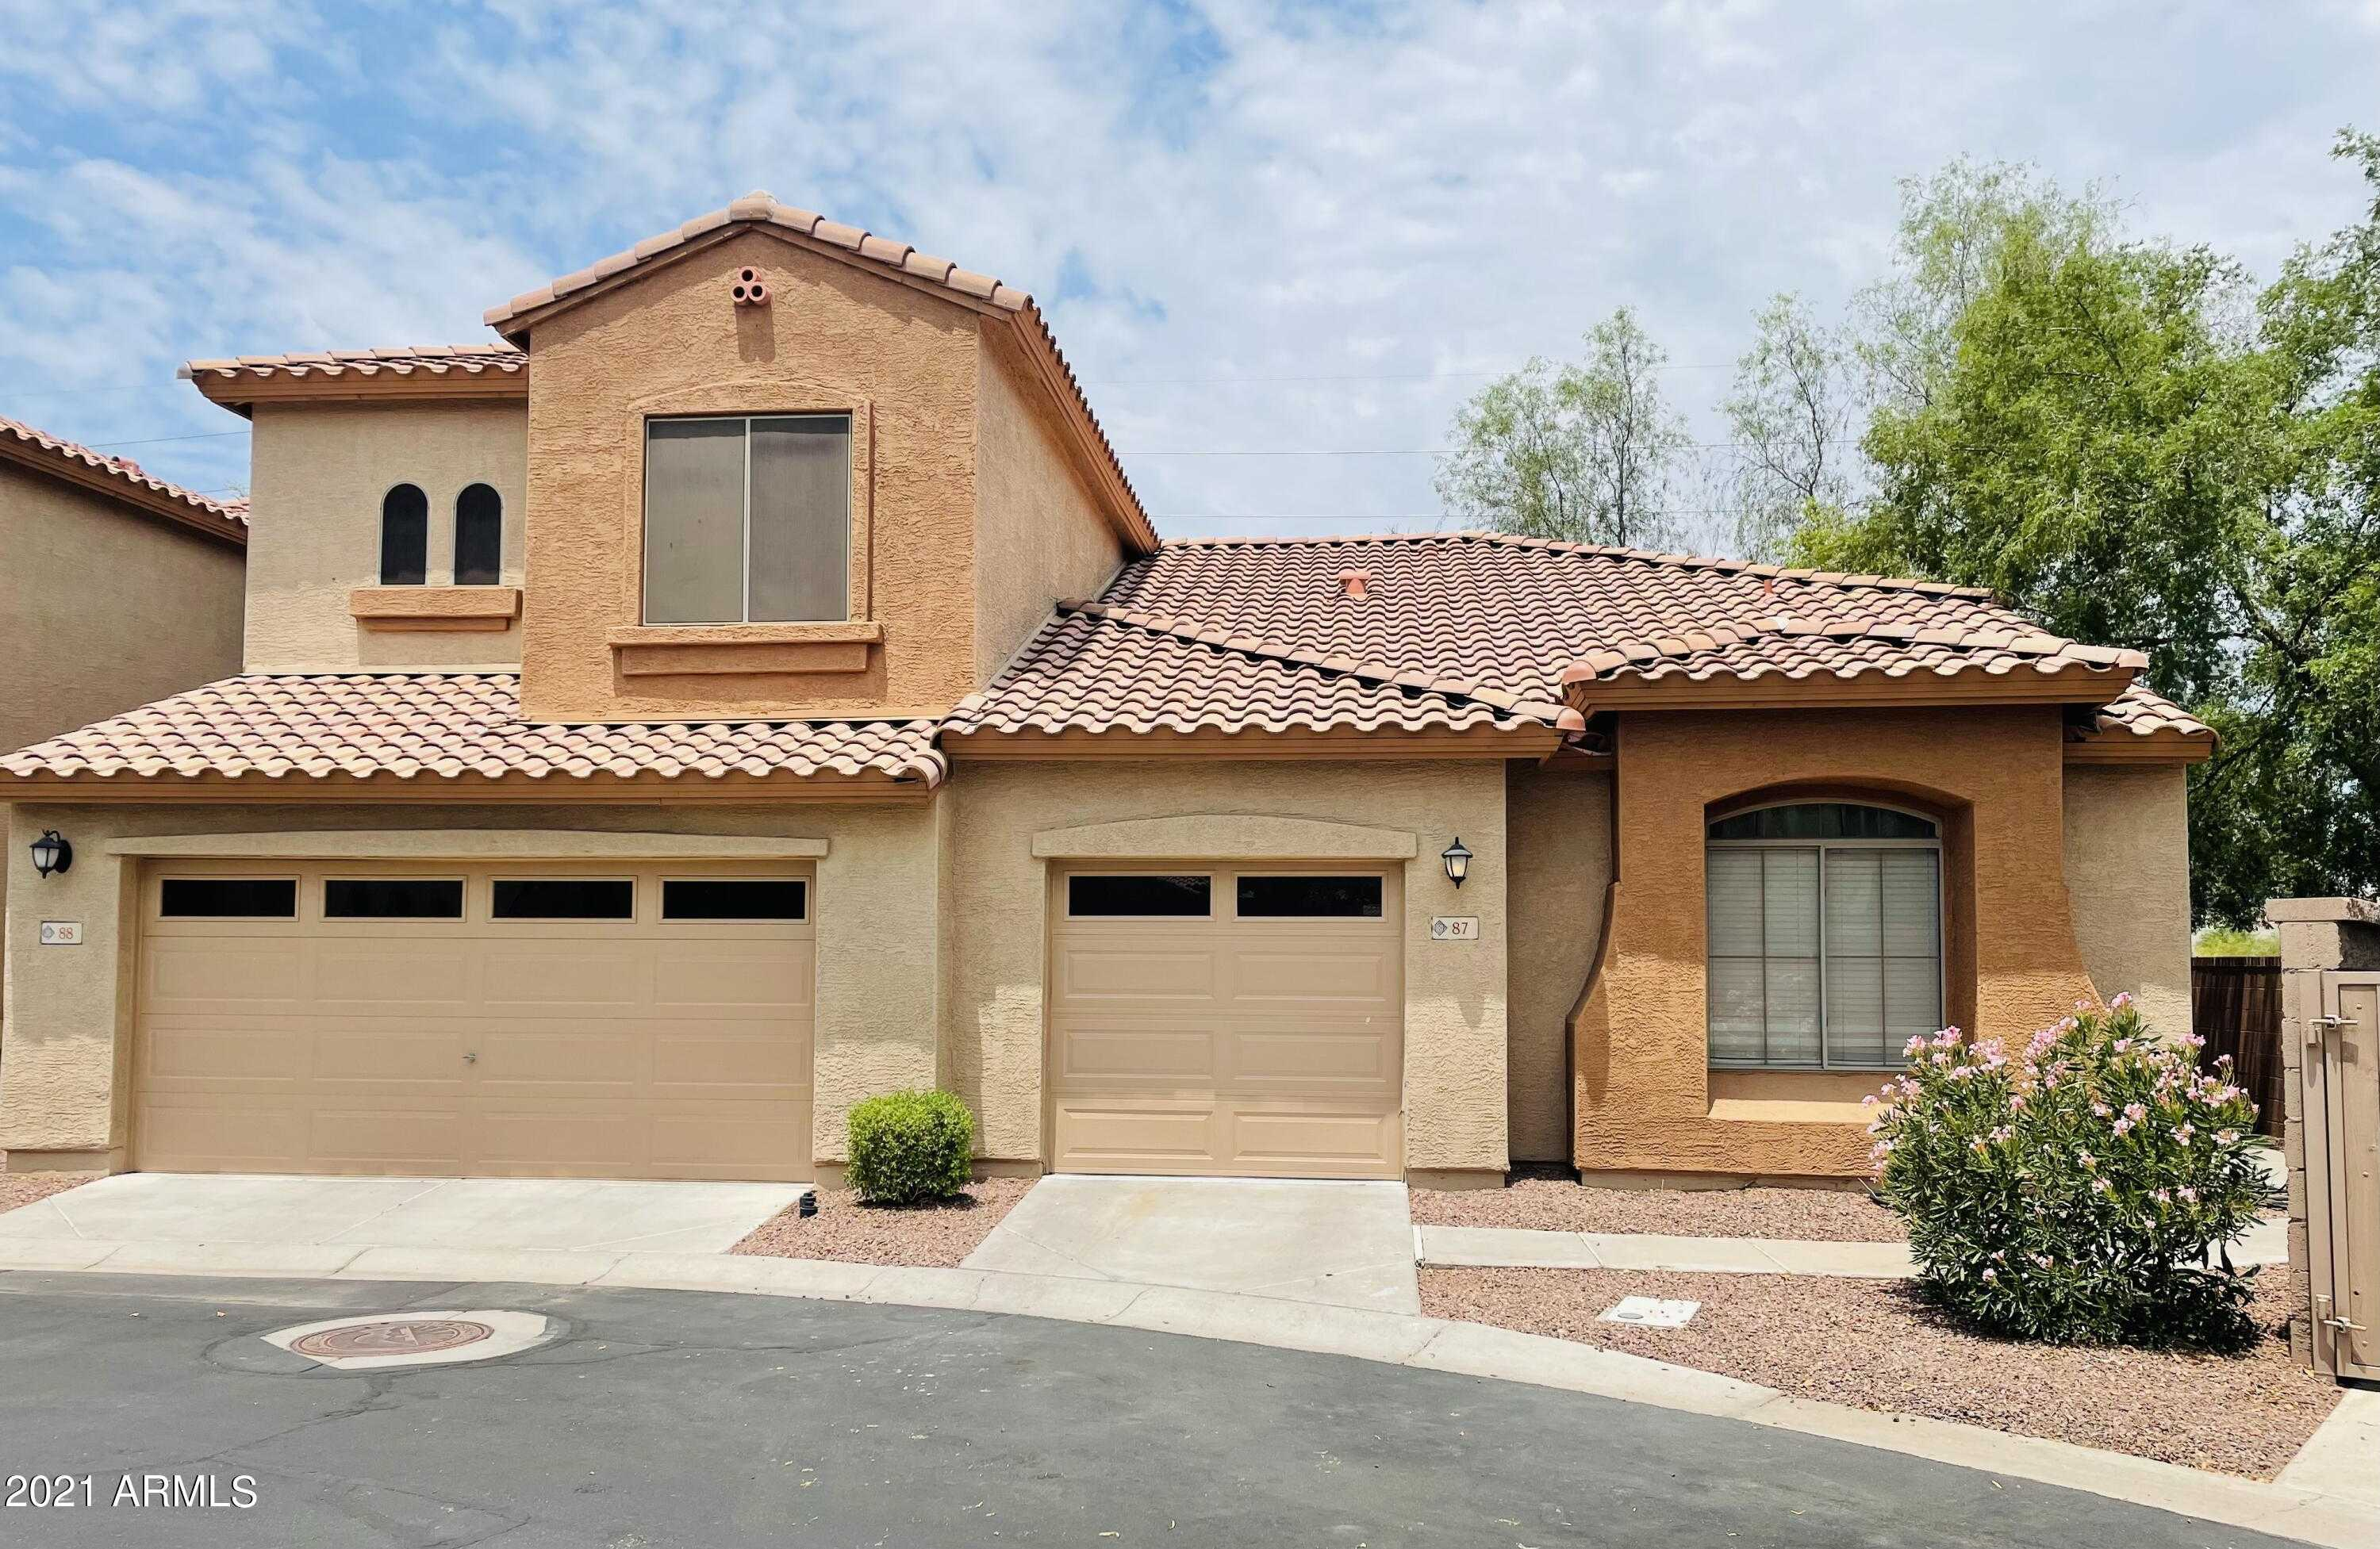 $330,000 - 2Br/2Ba -  for Sale in Rancho Del Ray Parcel 1 Final Plat, Chandler